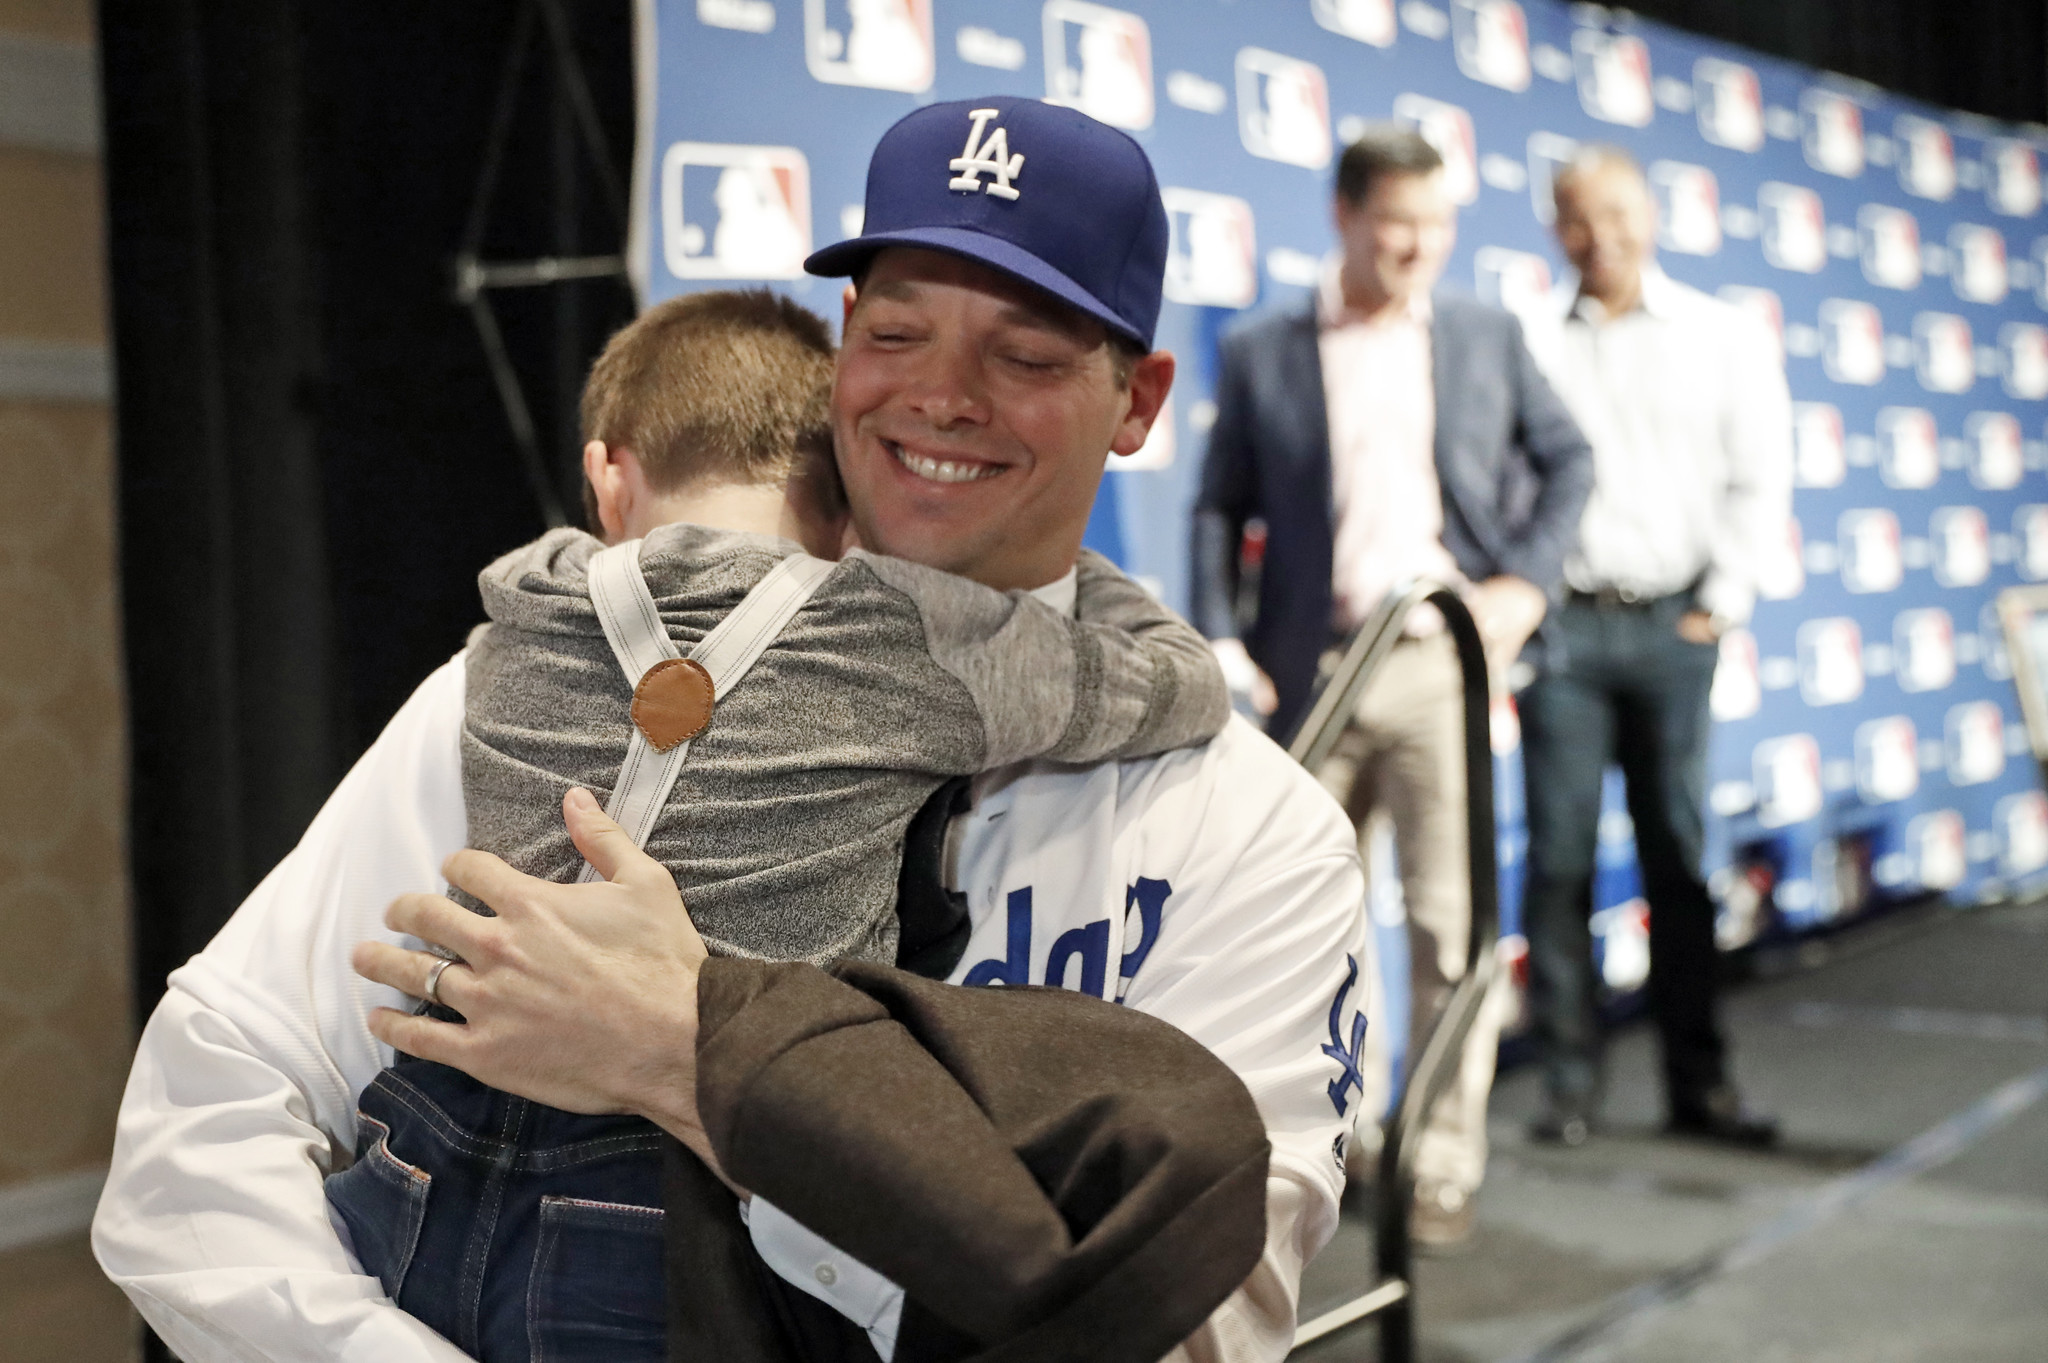 Rich Hill hugs his son Brice, 5, after the pitcher's new three-year deal with the Dodgers was announced at Major League Baseball's winter meetings on Dec. 5.